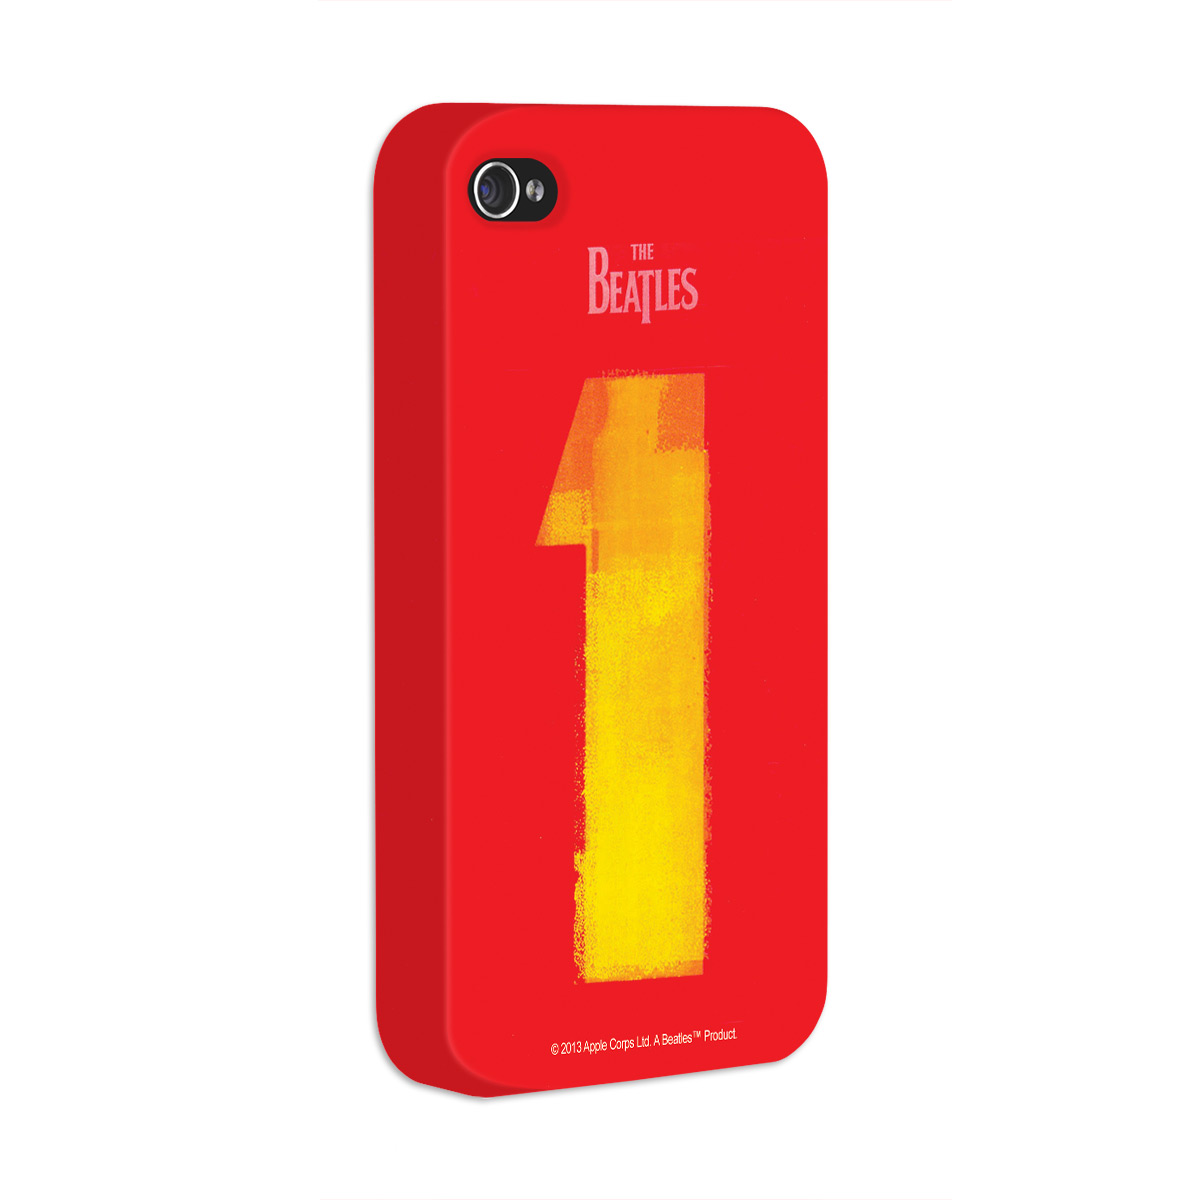 Capa de iPhone 4/4S The Beatles One